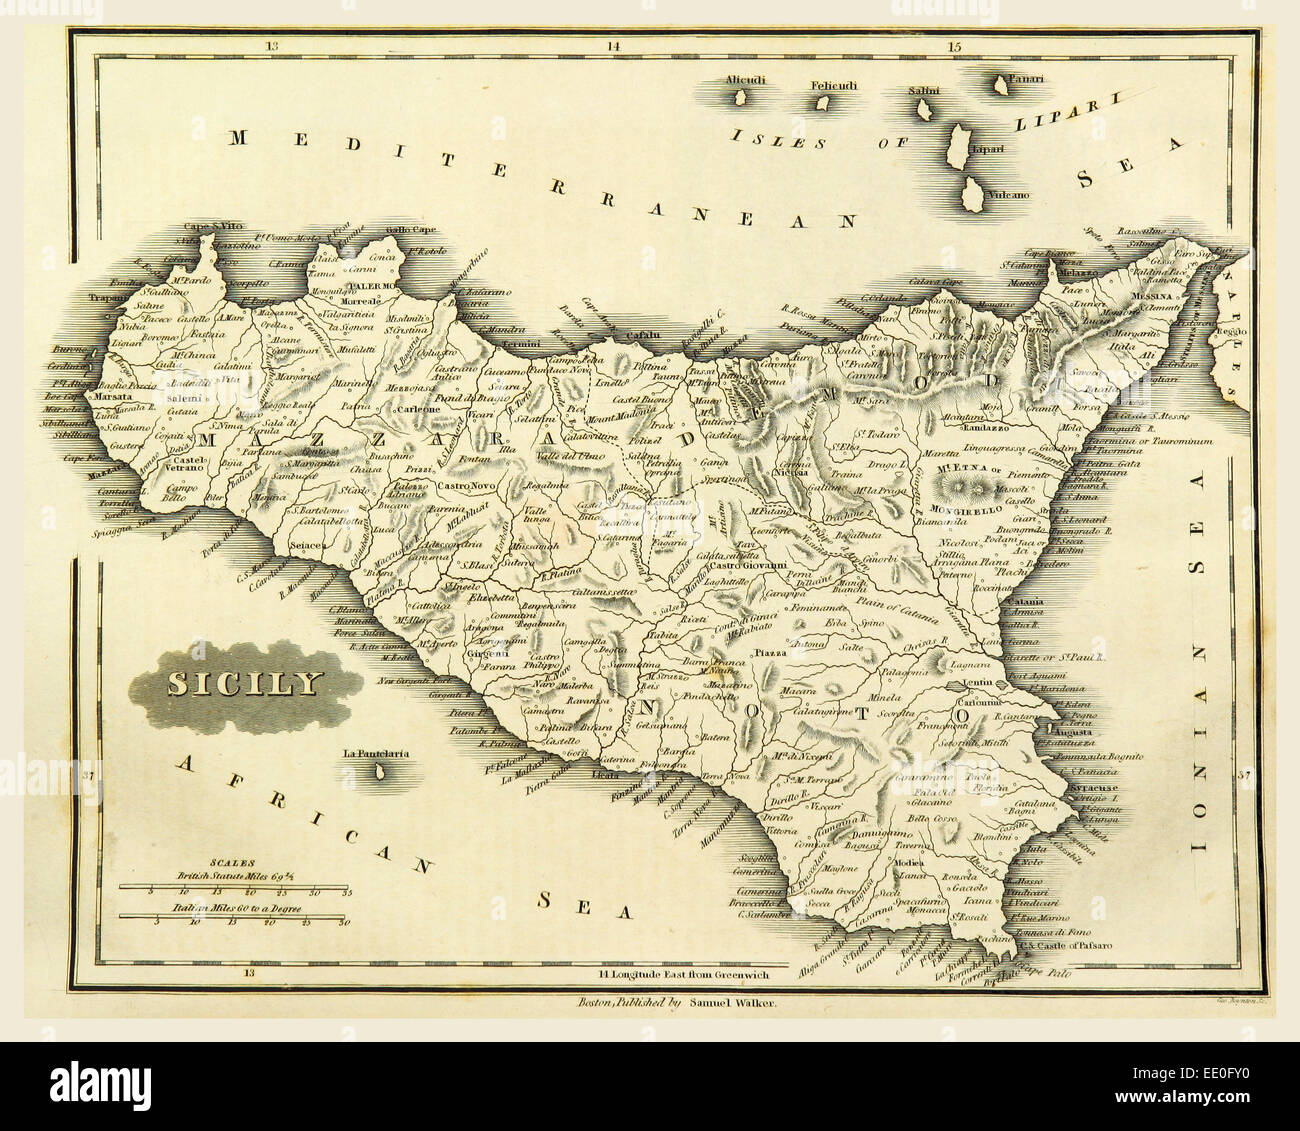 Map Sicily Italy 19th Century Engraving Stock Photo 77459172 Alamy